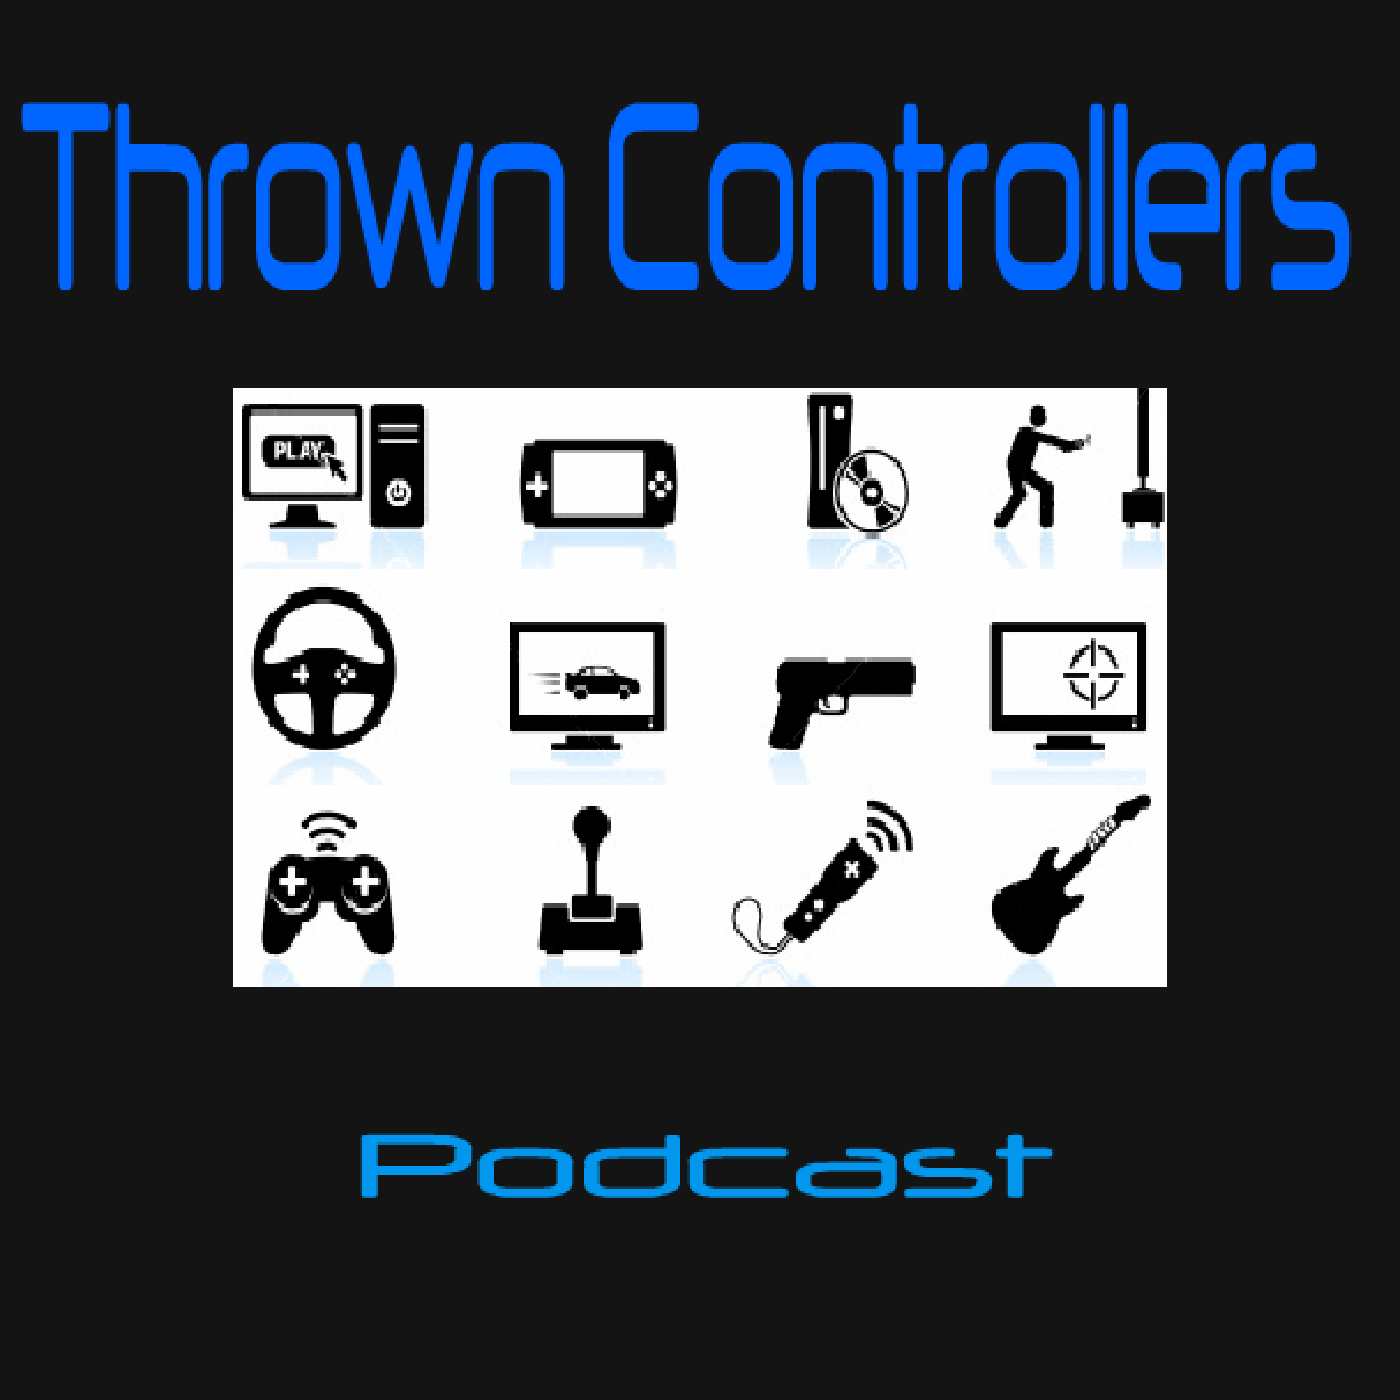 Thrown Controllers